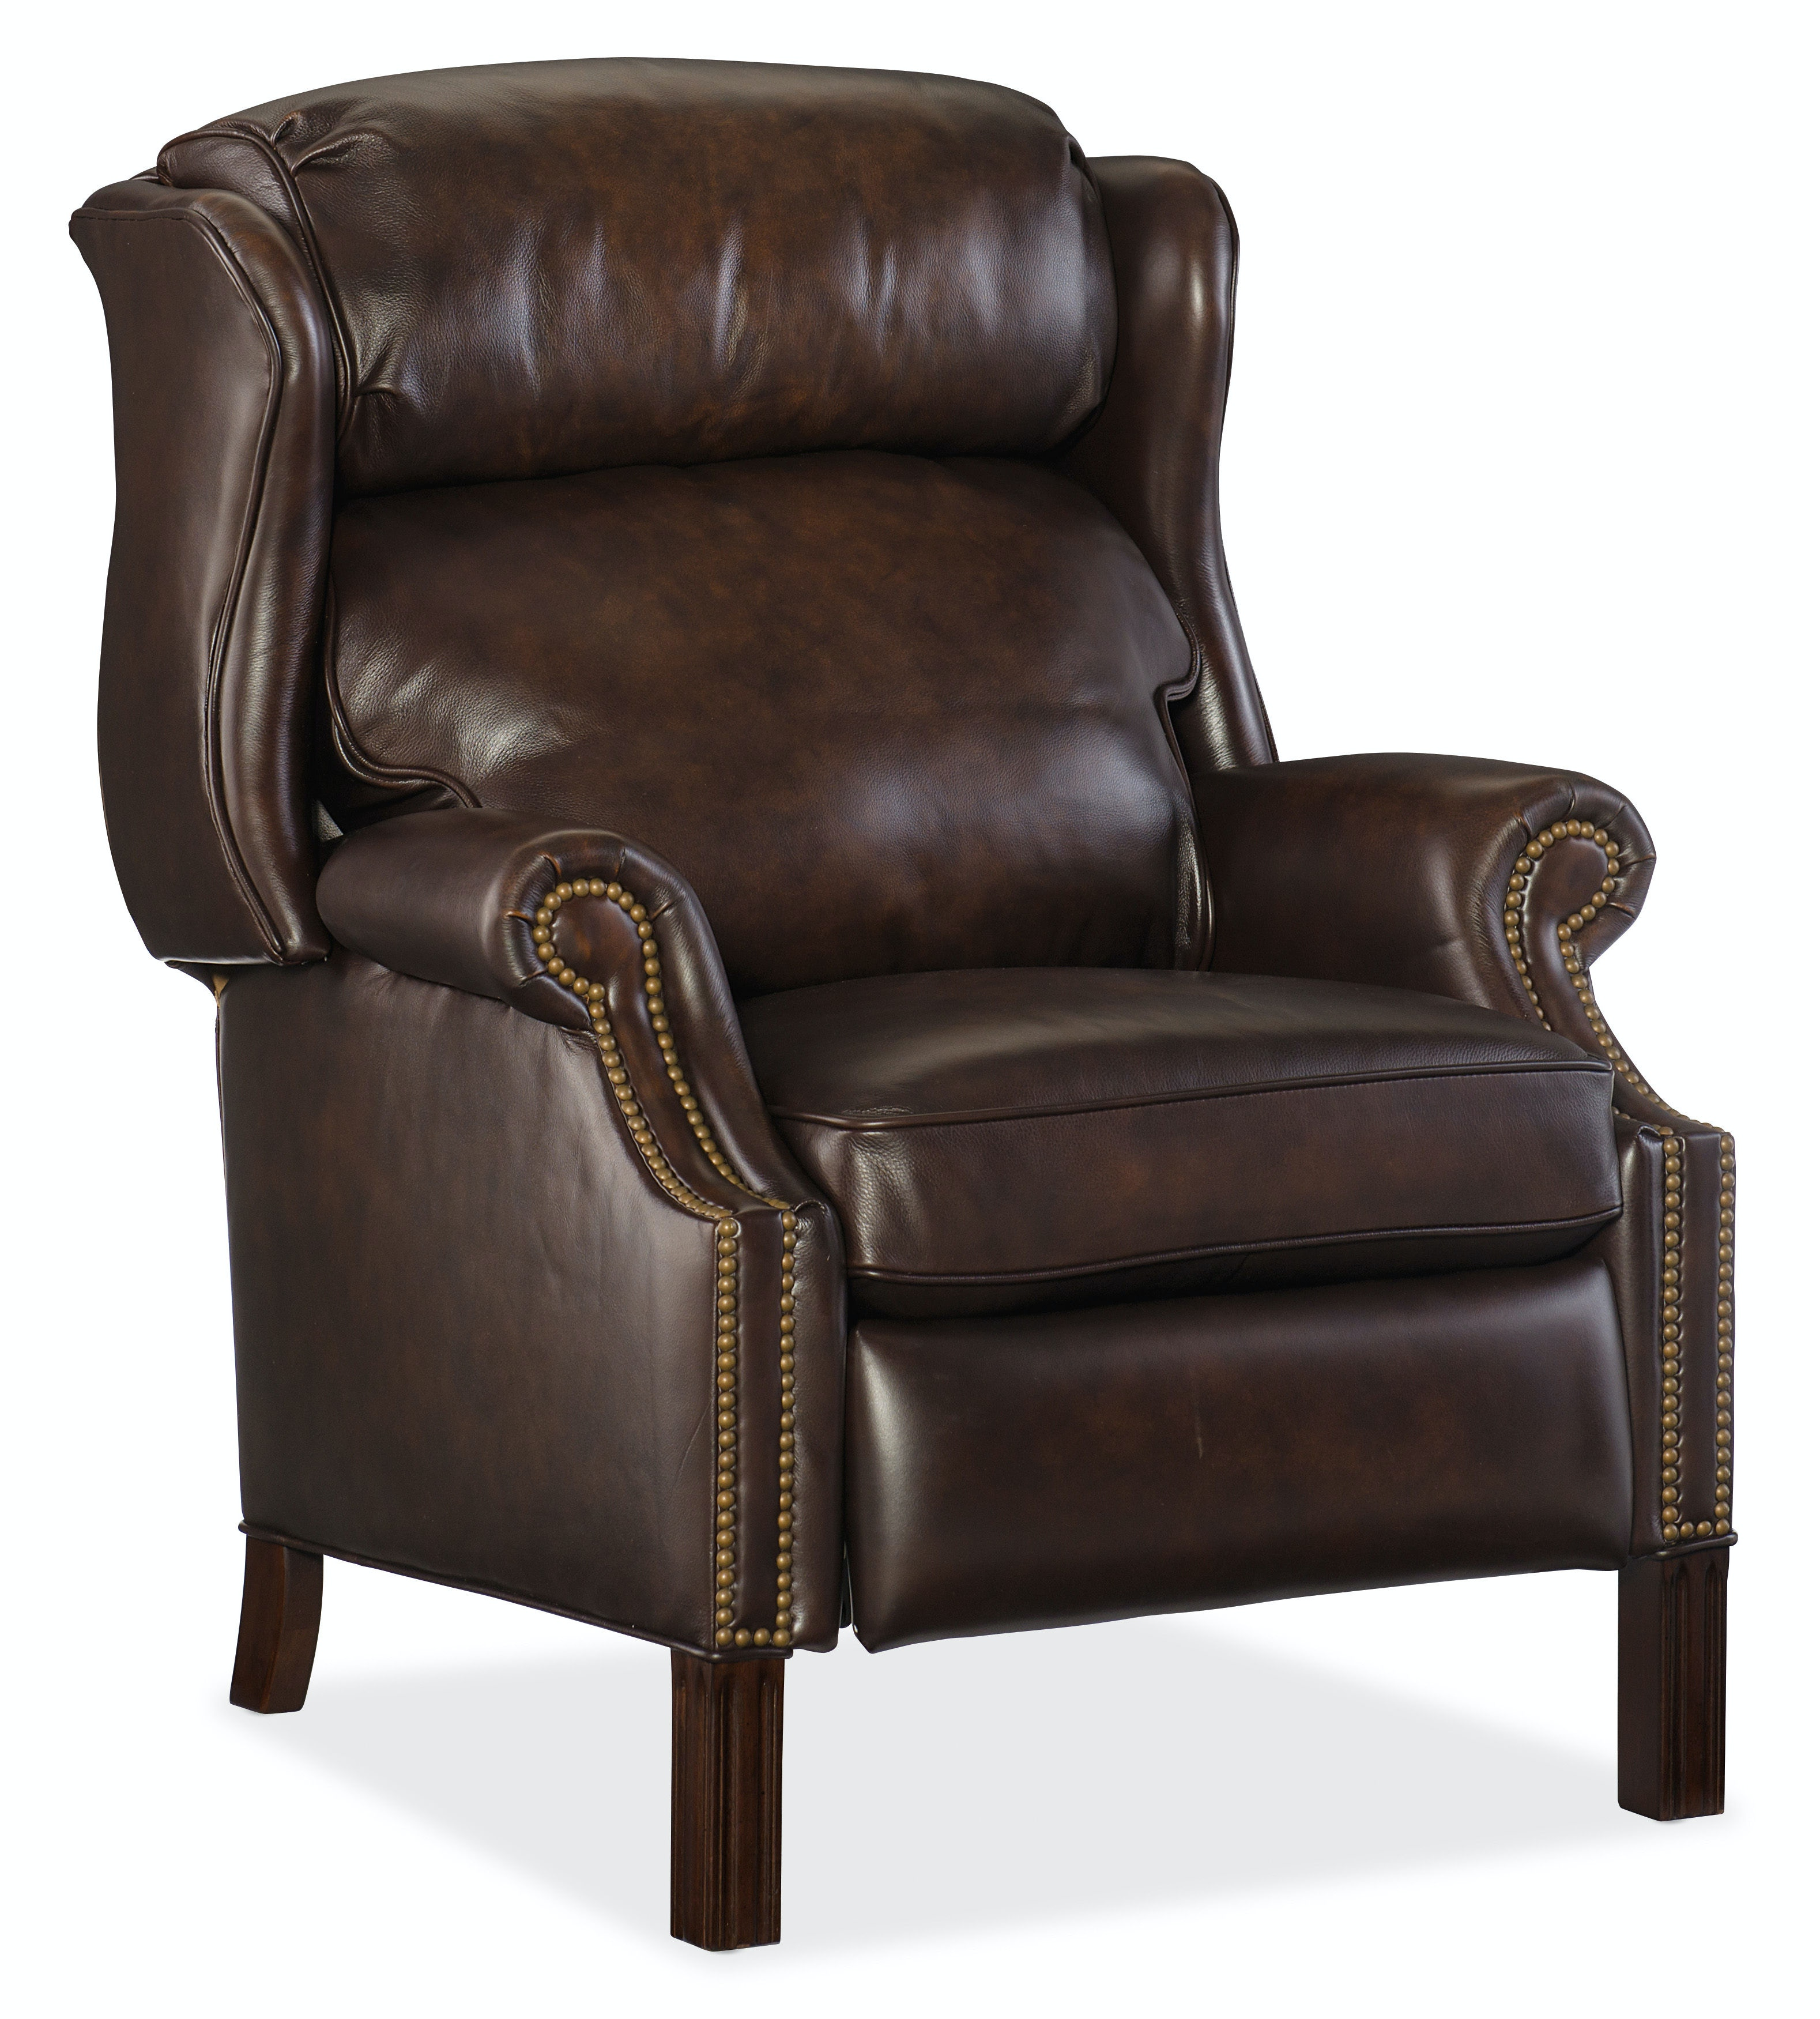 Hooker Furniture Living Room Finley Recliner RC214 203  : rc214 203 silo from www.indianriverfurniture.com size 1024 x 768 jpeg 35kB